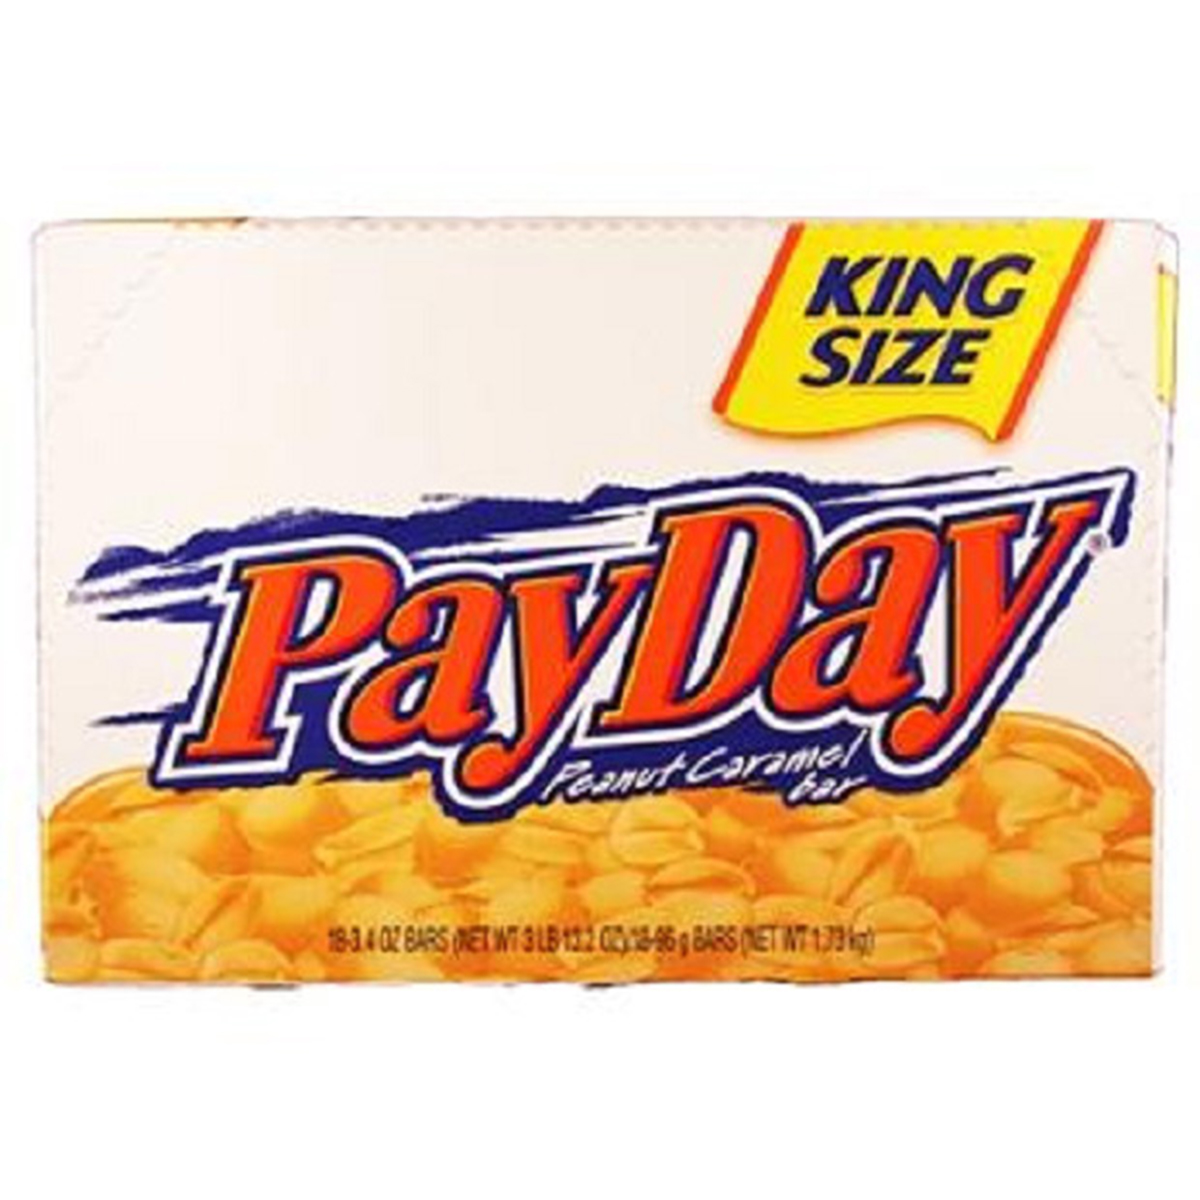 Product Of Payday, King Size Peanut Caramel Bar, Count 18 (3.4 oz) - Chocolate Candy / Grab Varieties & Flavors